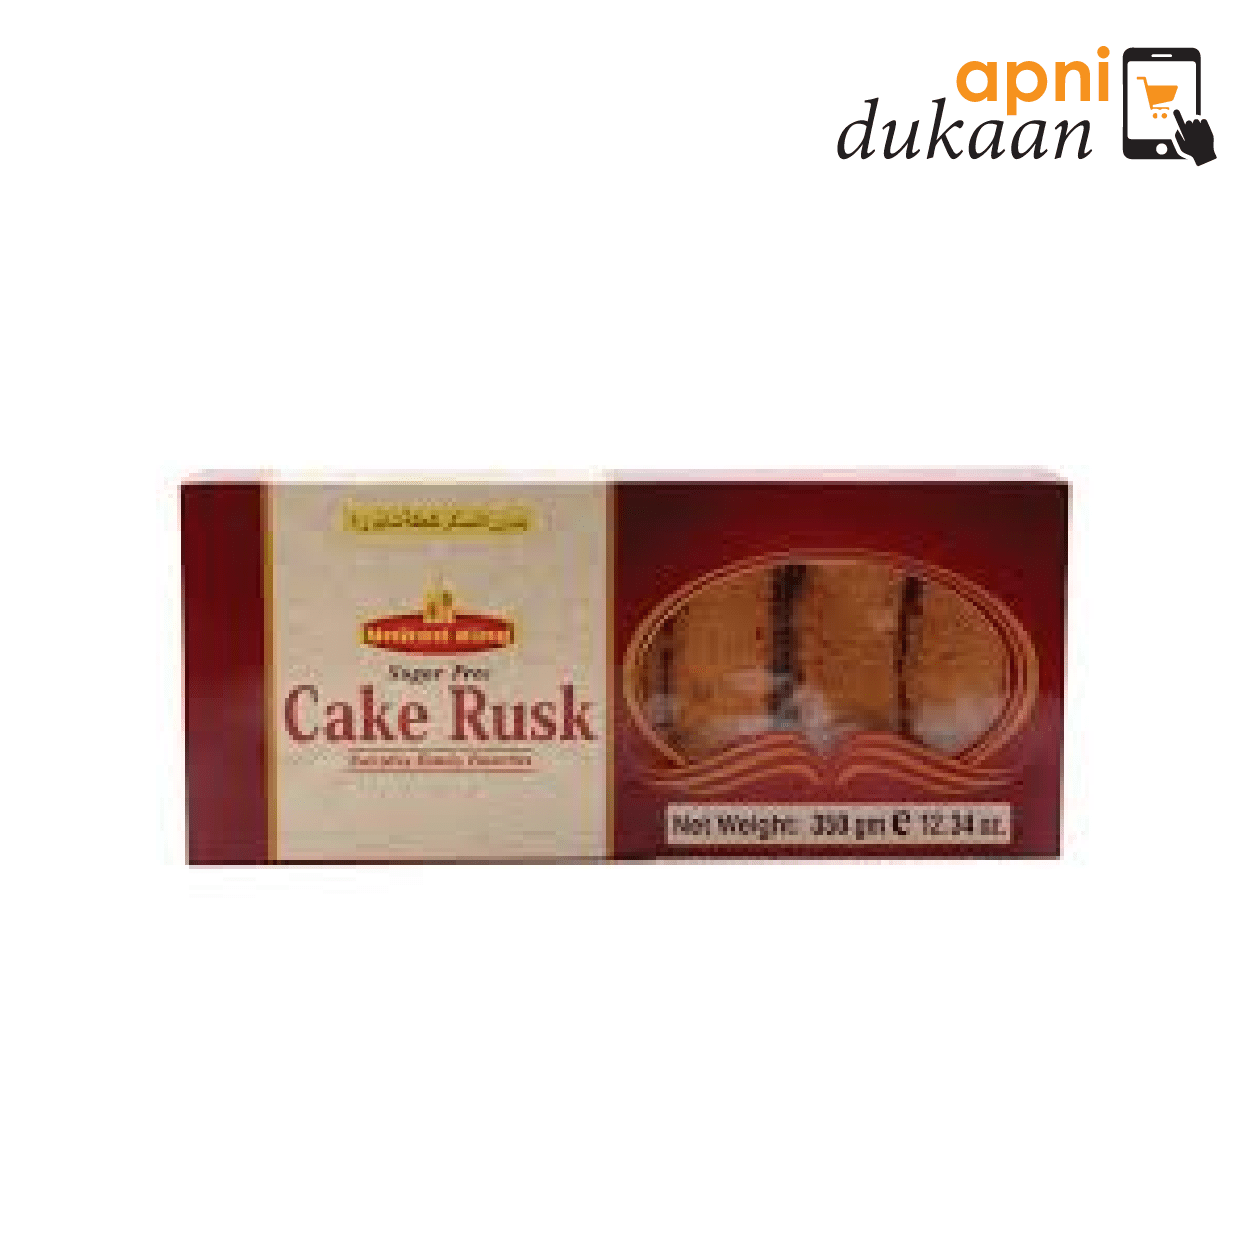 United King Sugar free Cake Rusk 350 gm